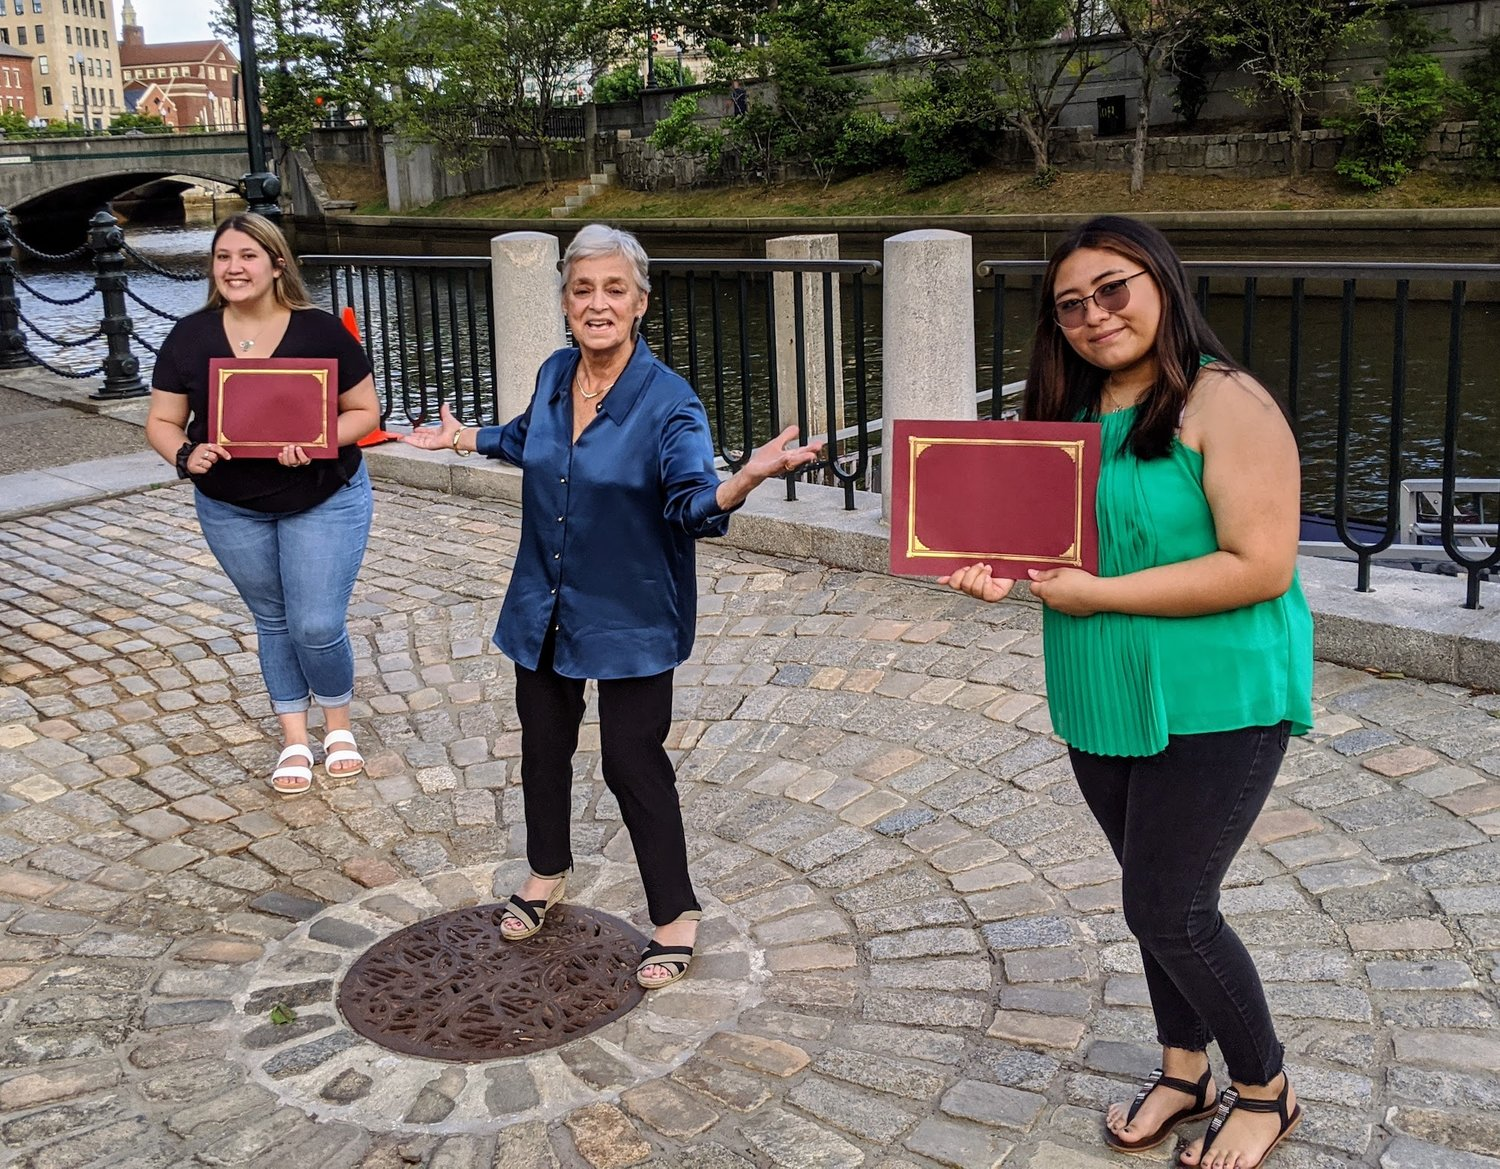 Linda Jane Maaia (center) presents East Providence High School Class of 2020 graduates Maria Lopez (left) and Carol Araujo with teacher scholarships while social distancing by the gondola dock in Providence.